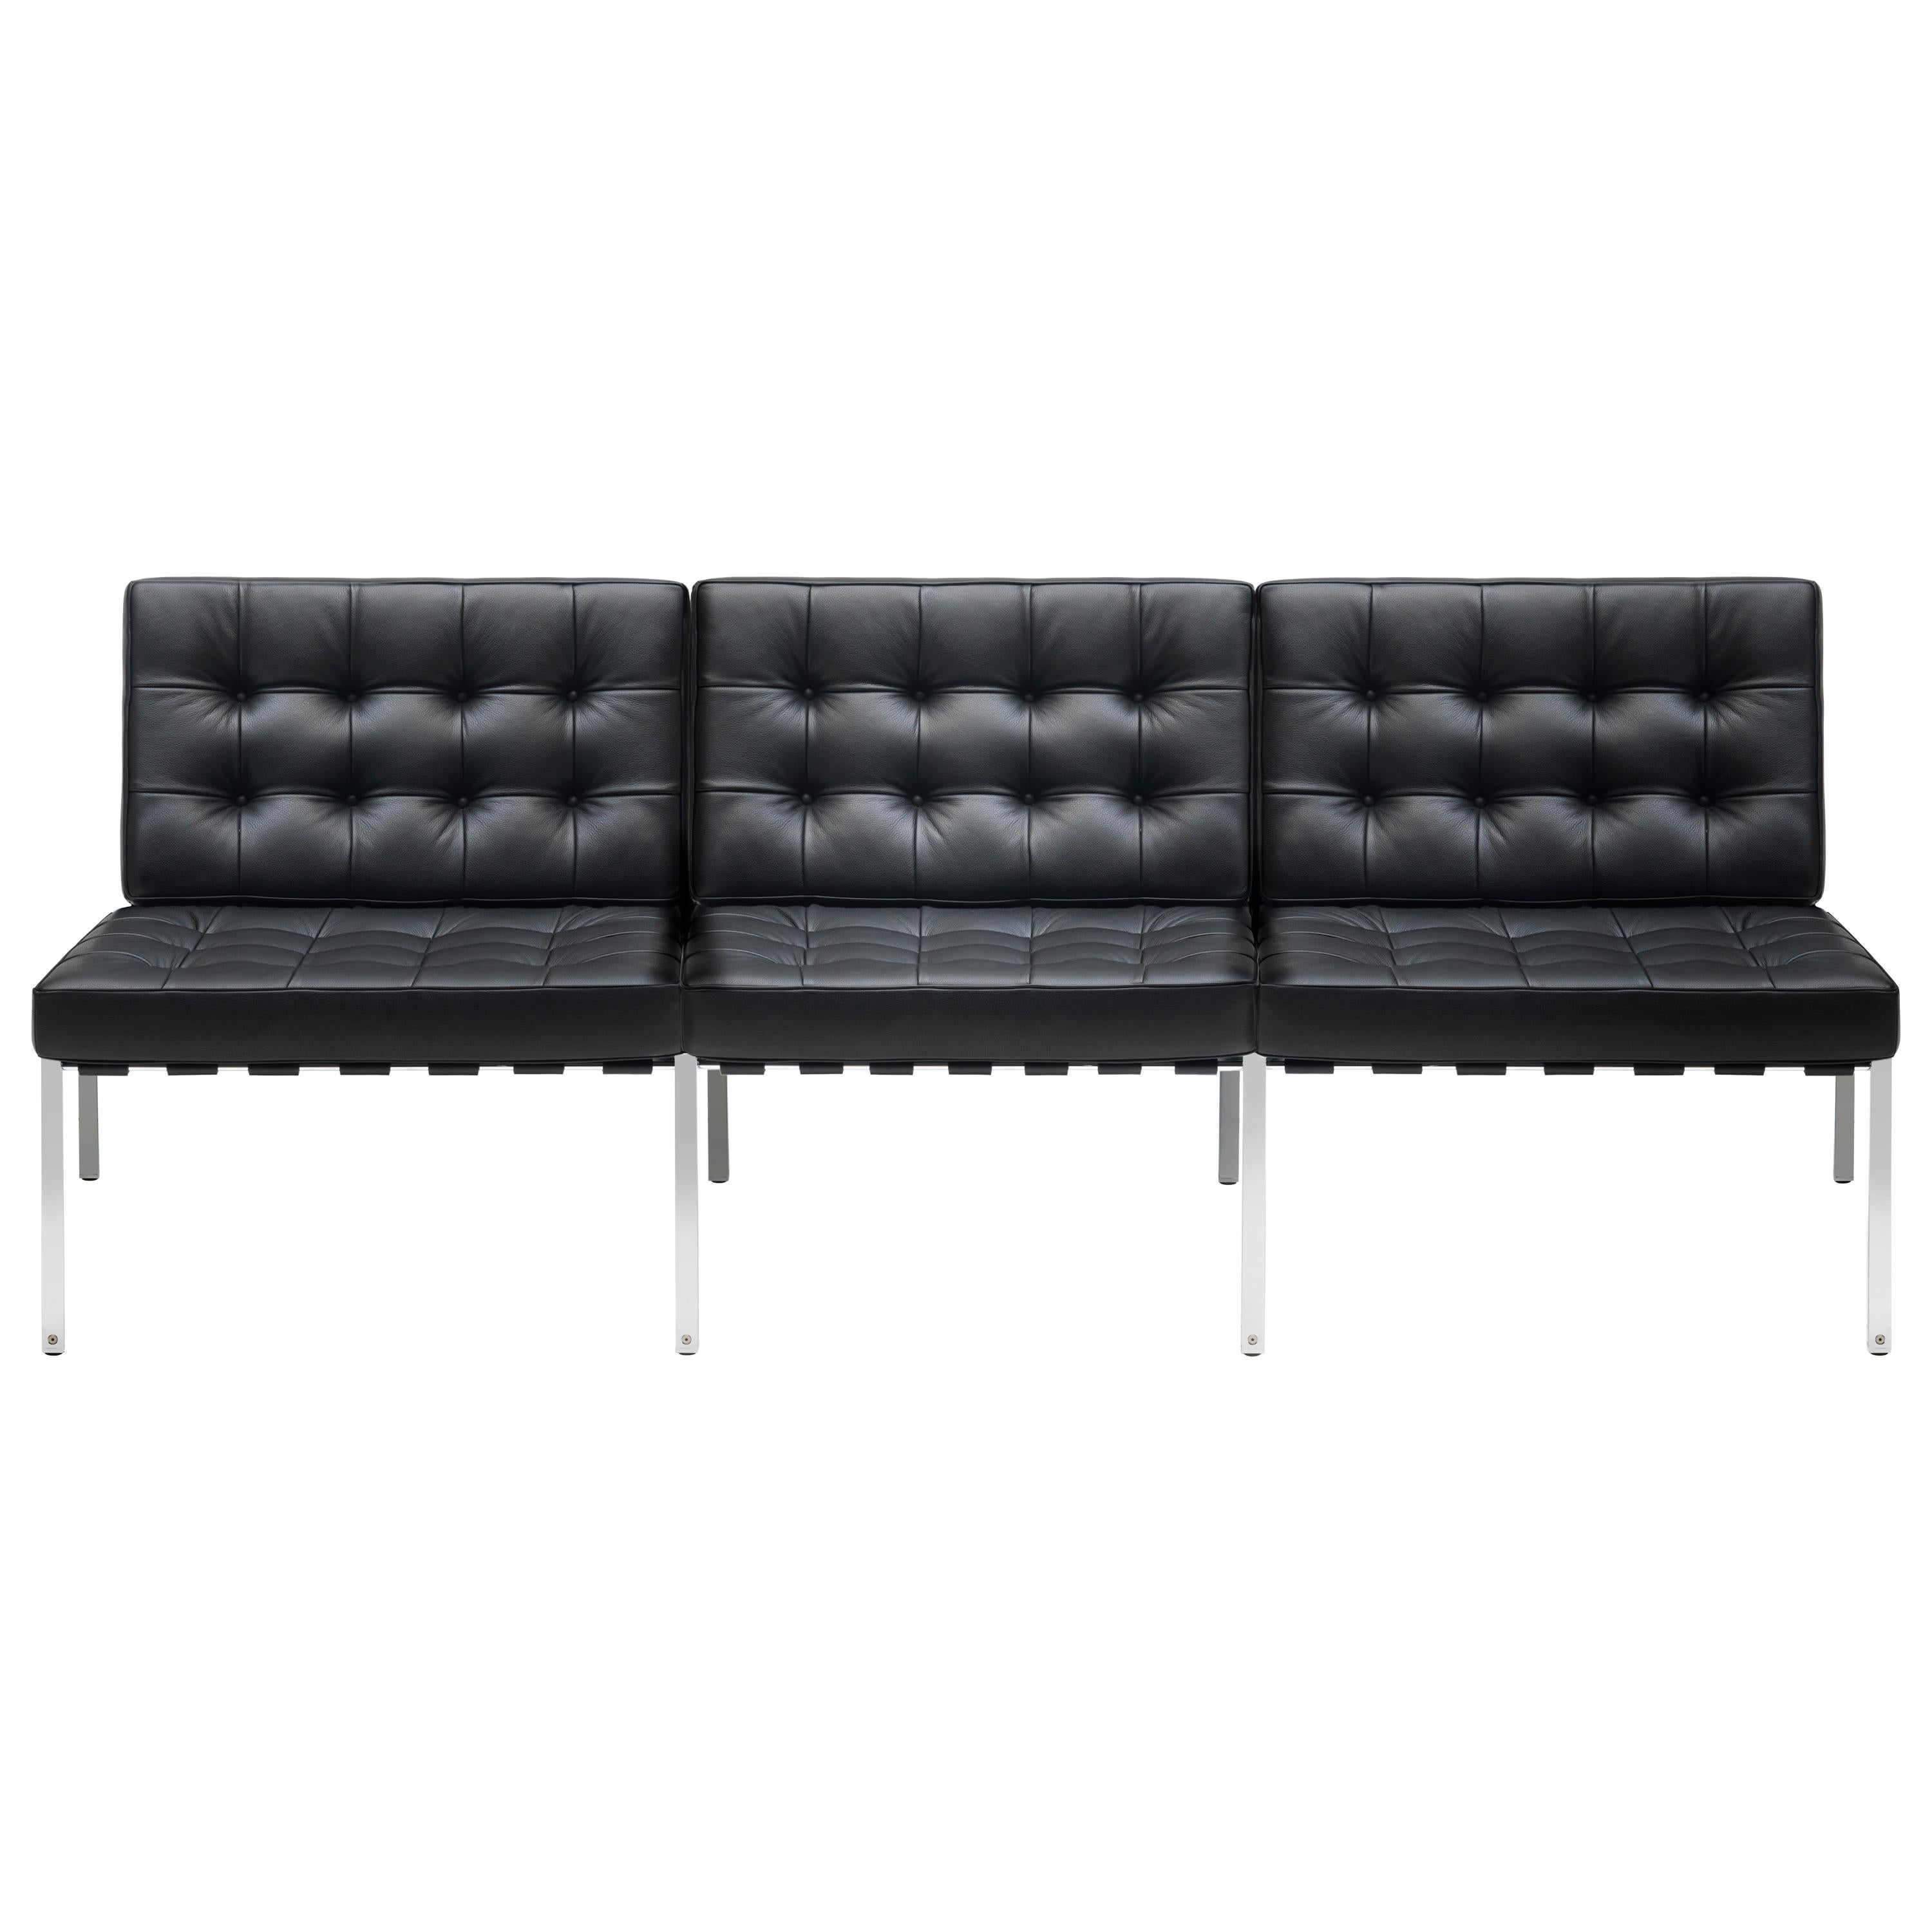 KT-221 Bauhaus Three-Seat Sofa in Tufted Natural Leather and Metal by De Sede